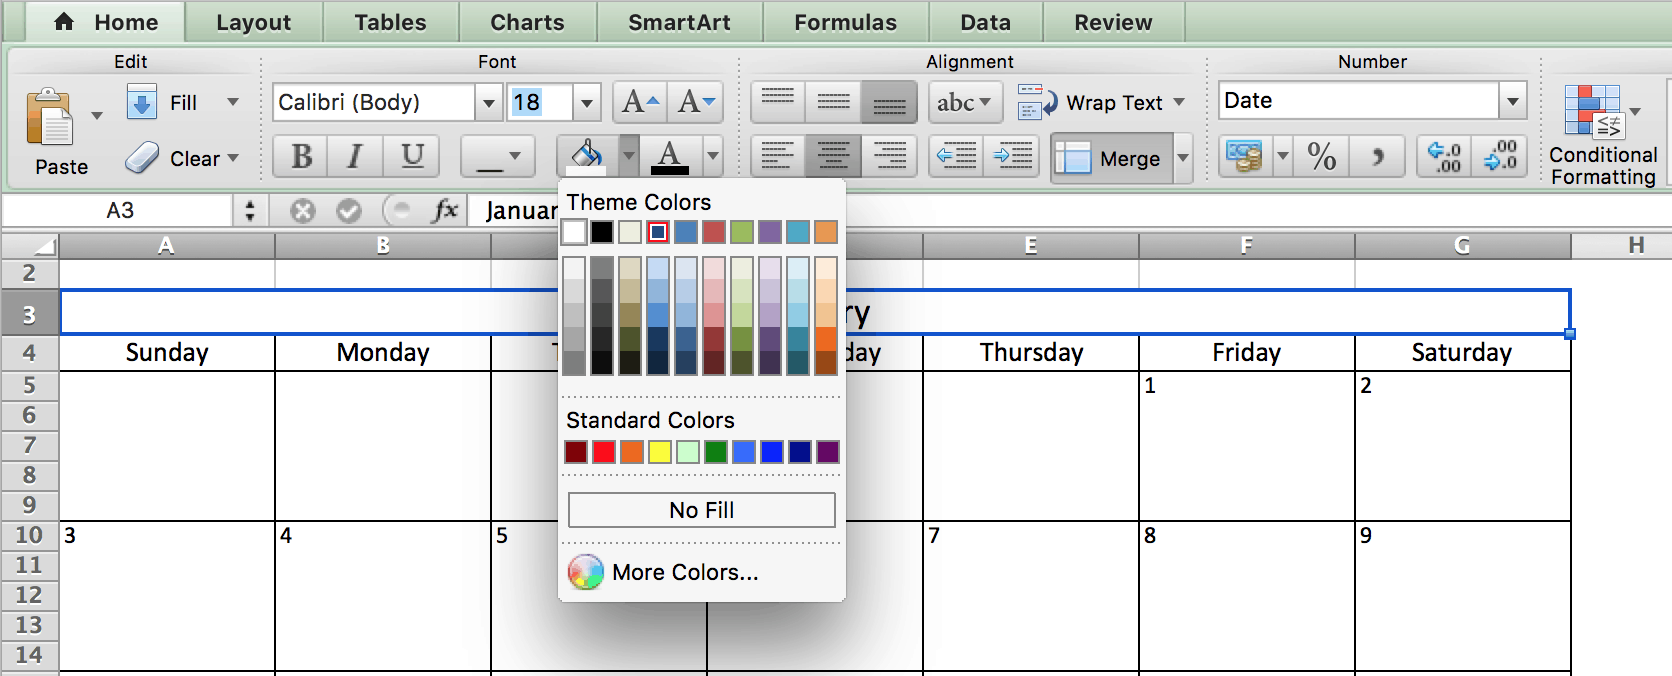 Ediblewildsus  Pretty Make A  Calendar In Excel Includes Free Template With Heavenly Choosing Colors  Calendar In Excel With Cool Distinct Count In Excel Also How To Freeze A Row In Excel  In Addition What Is A Workbook In Excel And How To Alternate Row Colors In Excel As Well As Excel For Ipad Cost Additionally Excel Filter Shortcut From Smartsheetcom With Ediblewildsus  Heavenly Make A  Calendar In Excel Includes Free Template With Cool Choosing Colors  Calendar In Excel And Pretty Distinct Count In Excel Also How To Freeze A Row In Excel  In Addition What Is A Workbook In Excel From Smartsheetcom